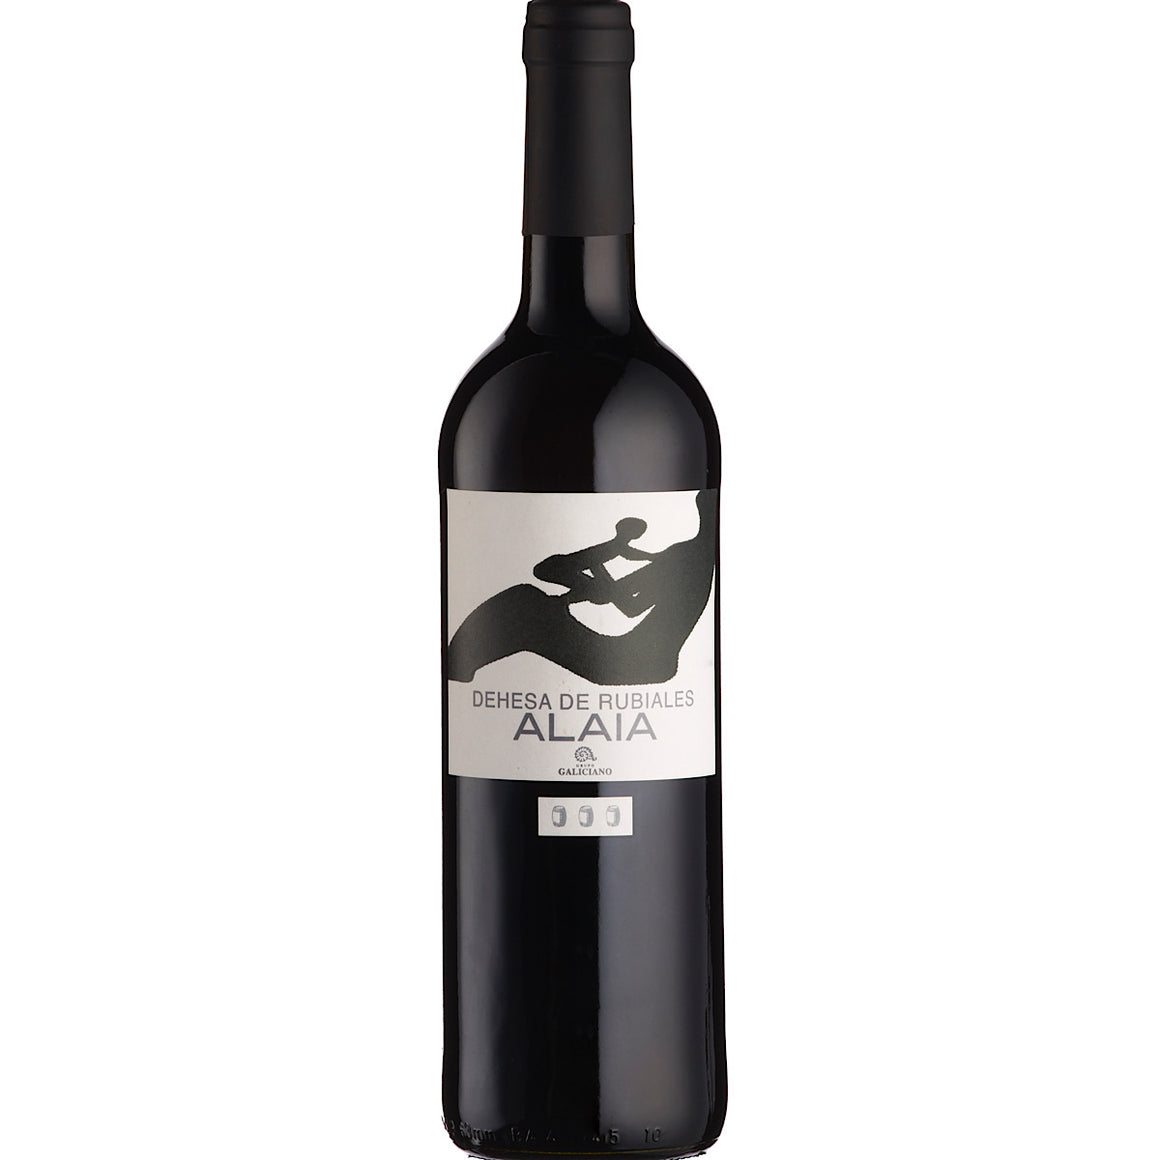 Alaia Prieto Picudo Tempranillo 6 Bottle Case